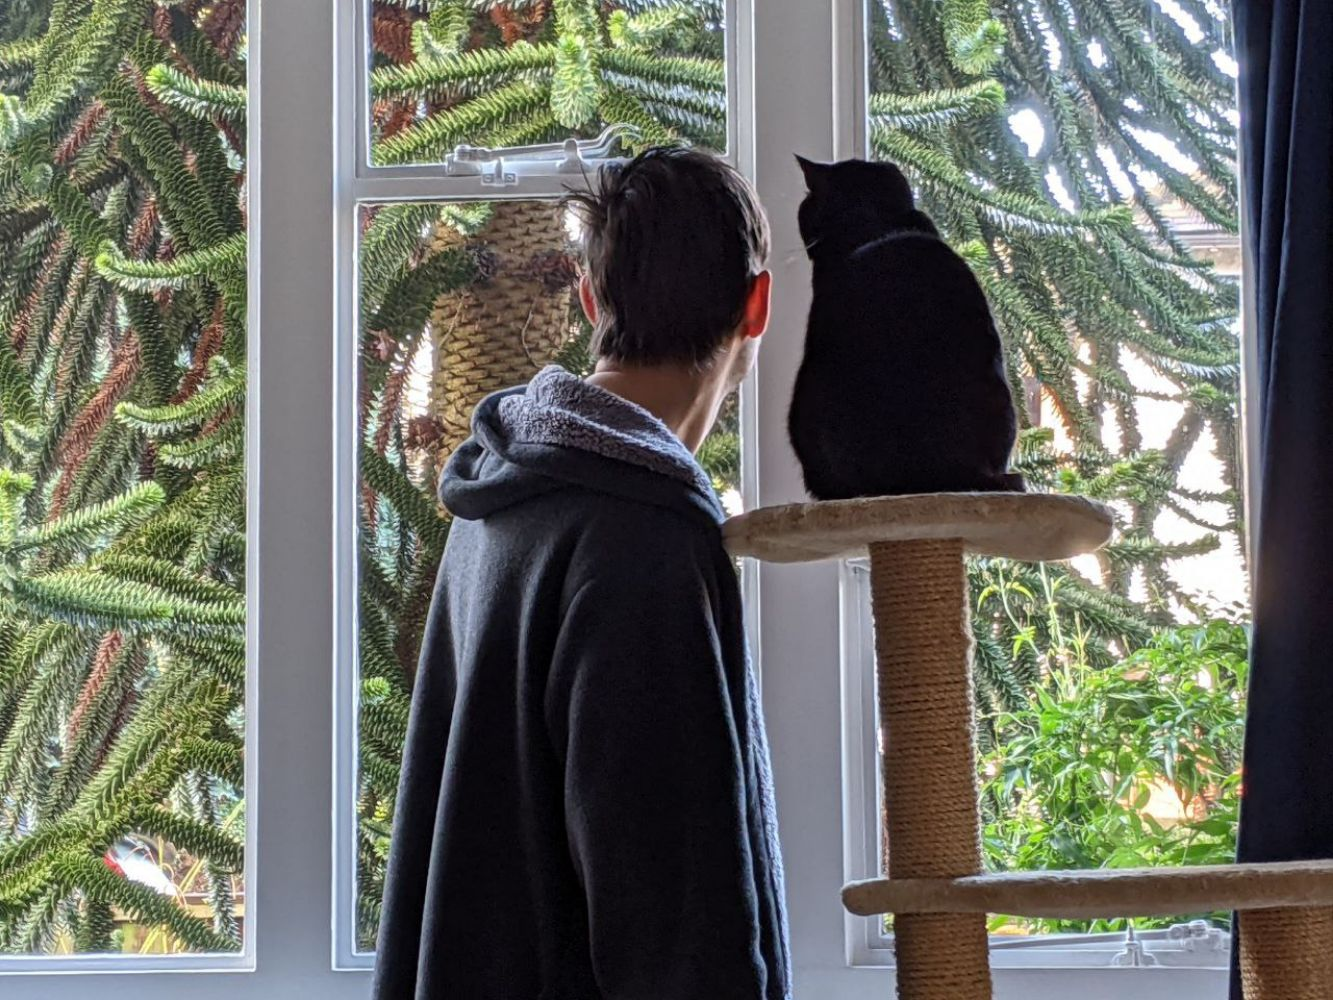 Jamie standing next to a cat tower with a black cat, Morph, sitting on top of it, looking out the living room window together, trying to see if there are any birds behind our monkey puzzle tree